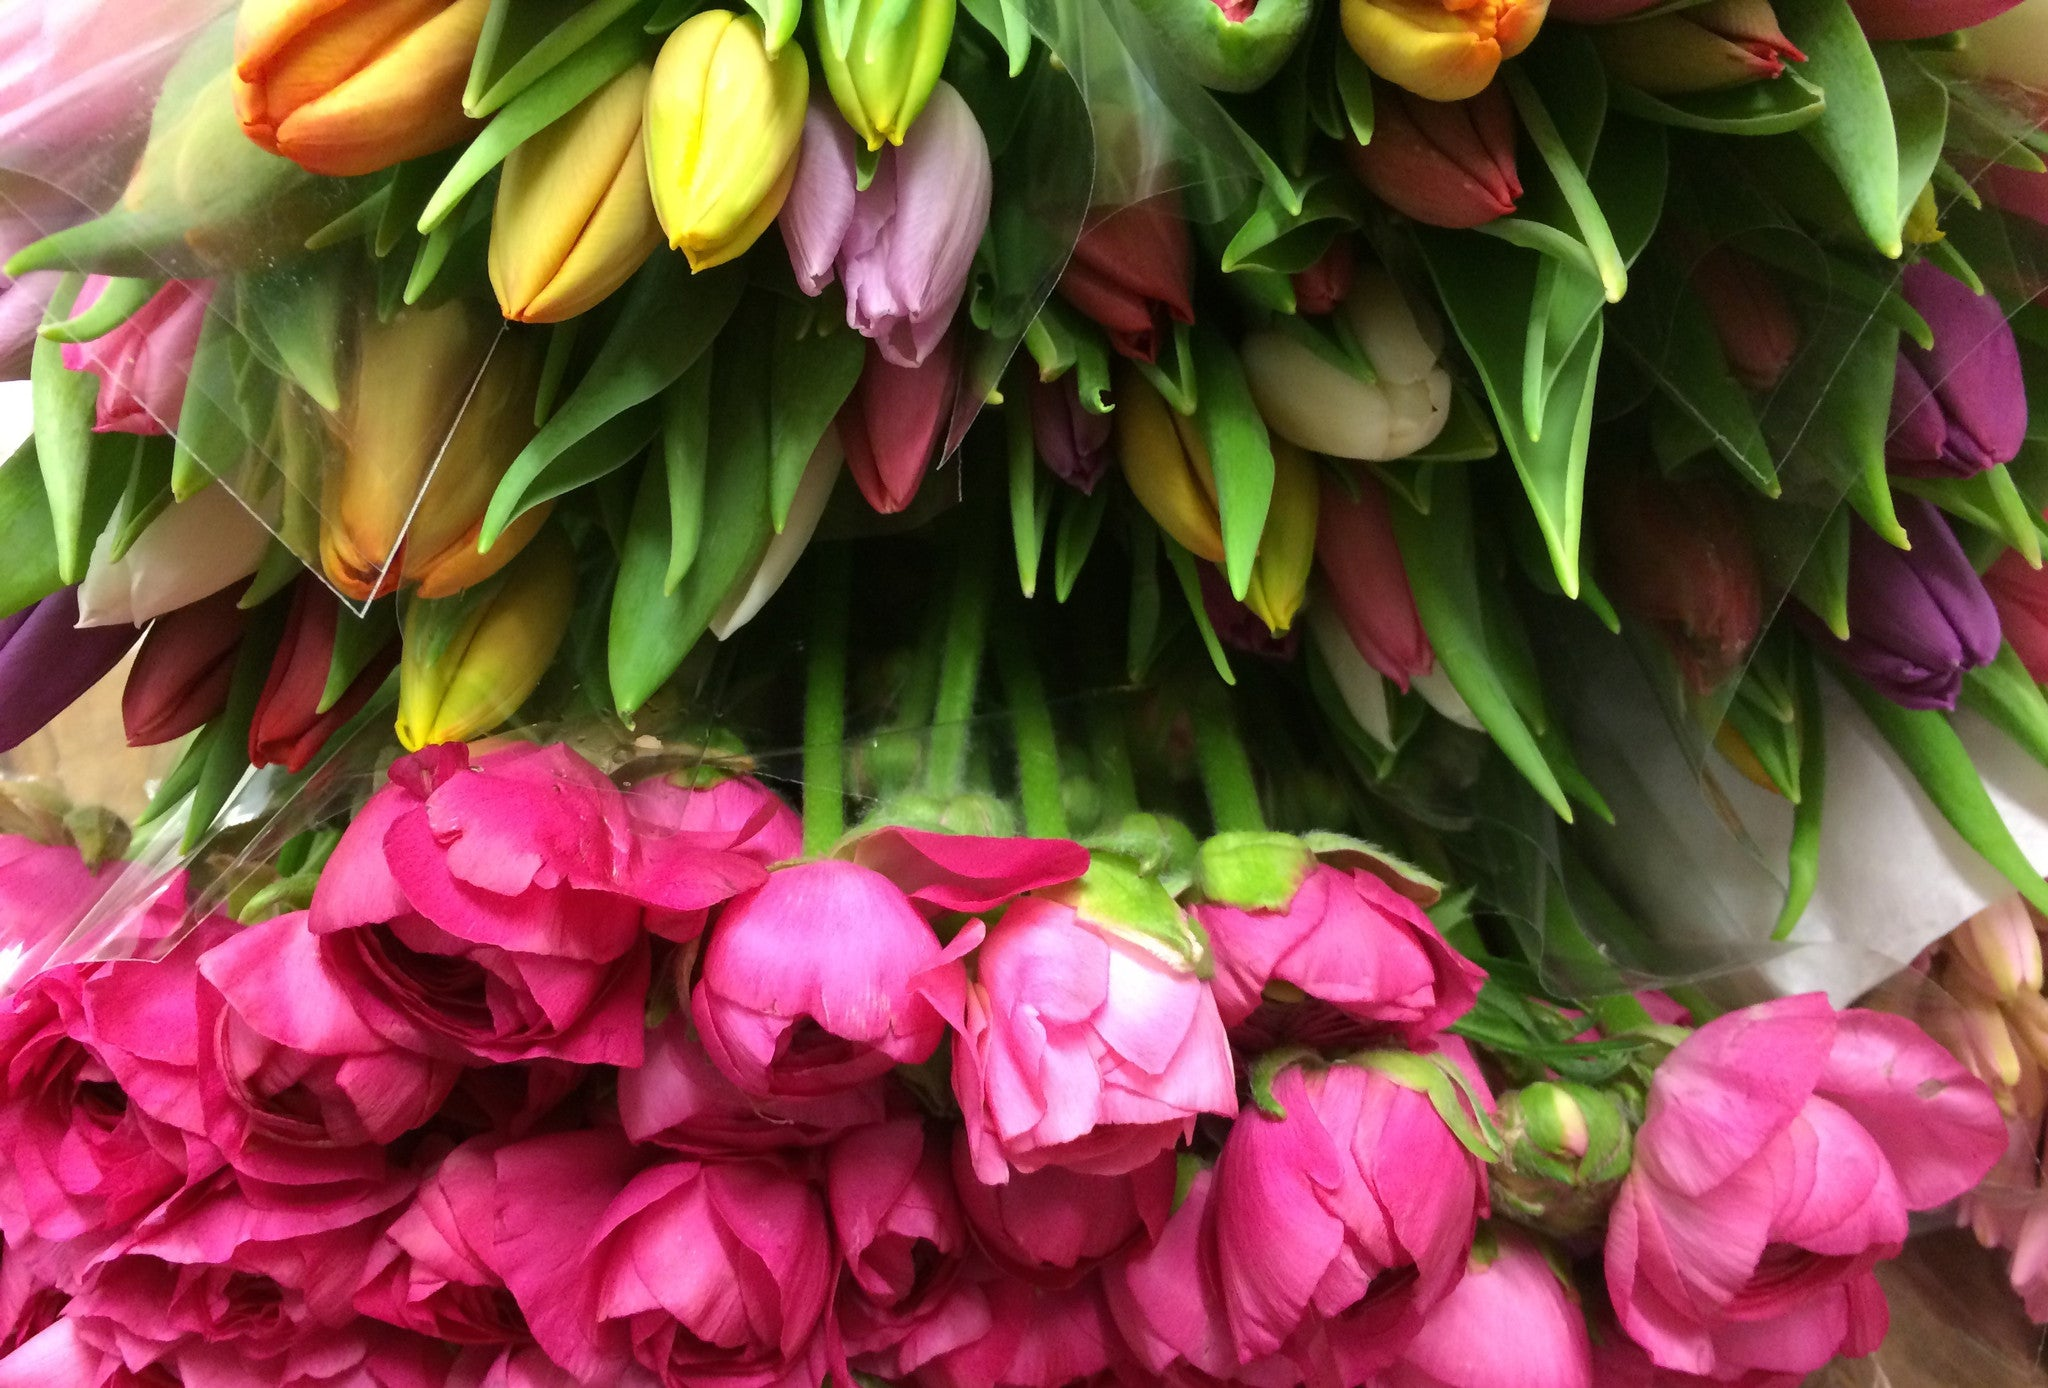 Bright and bold spring flowers including tulips and ranunculus.